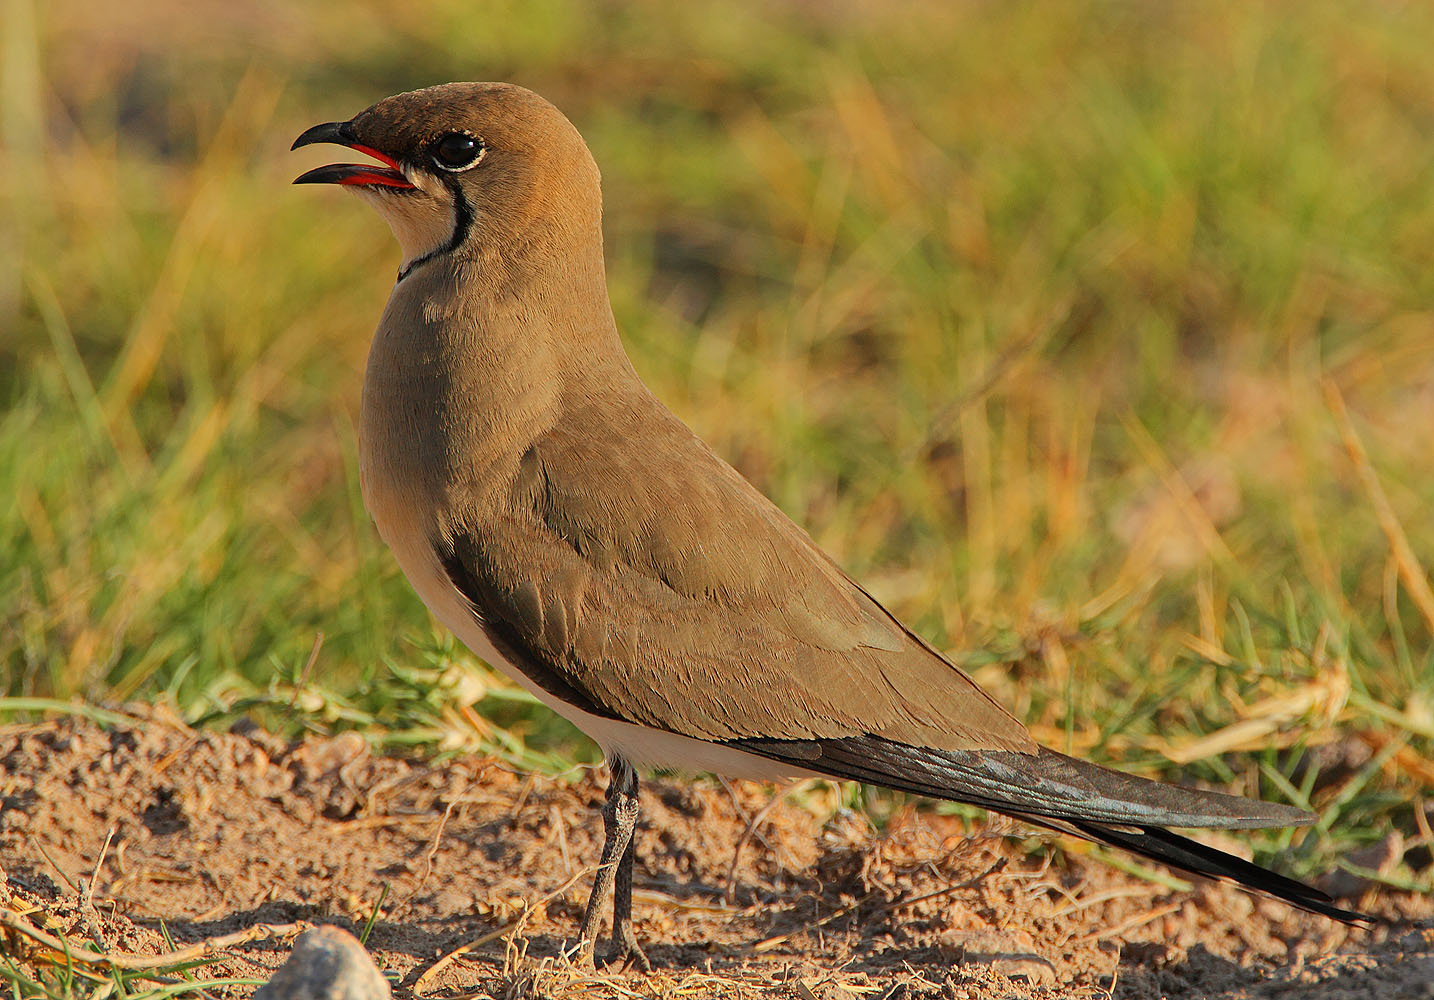 Glareola pratincola, Collared Pratincole, Common Pratincole